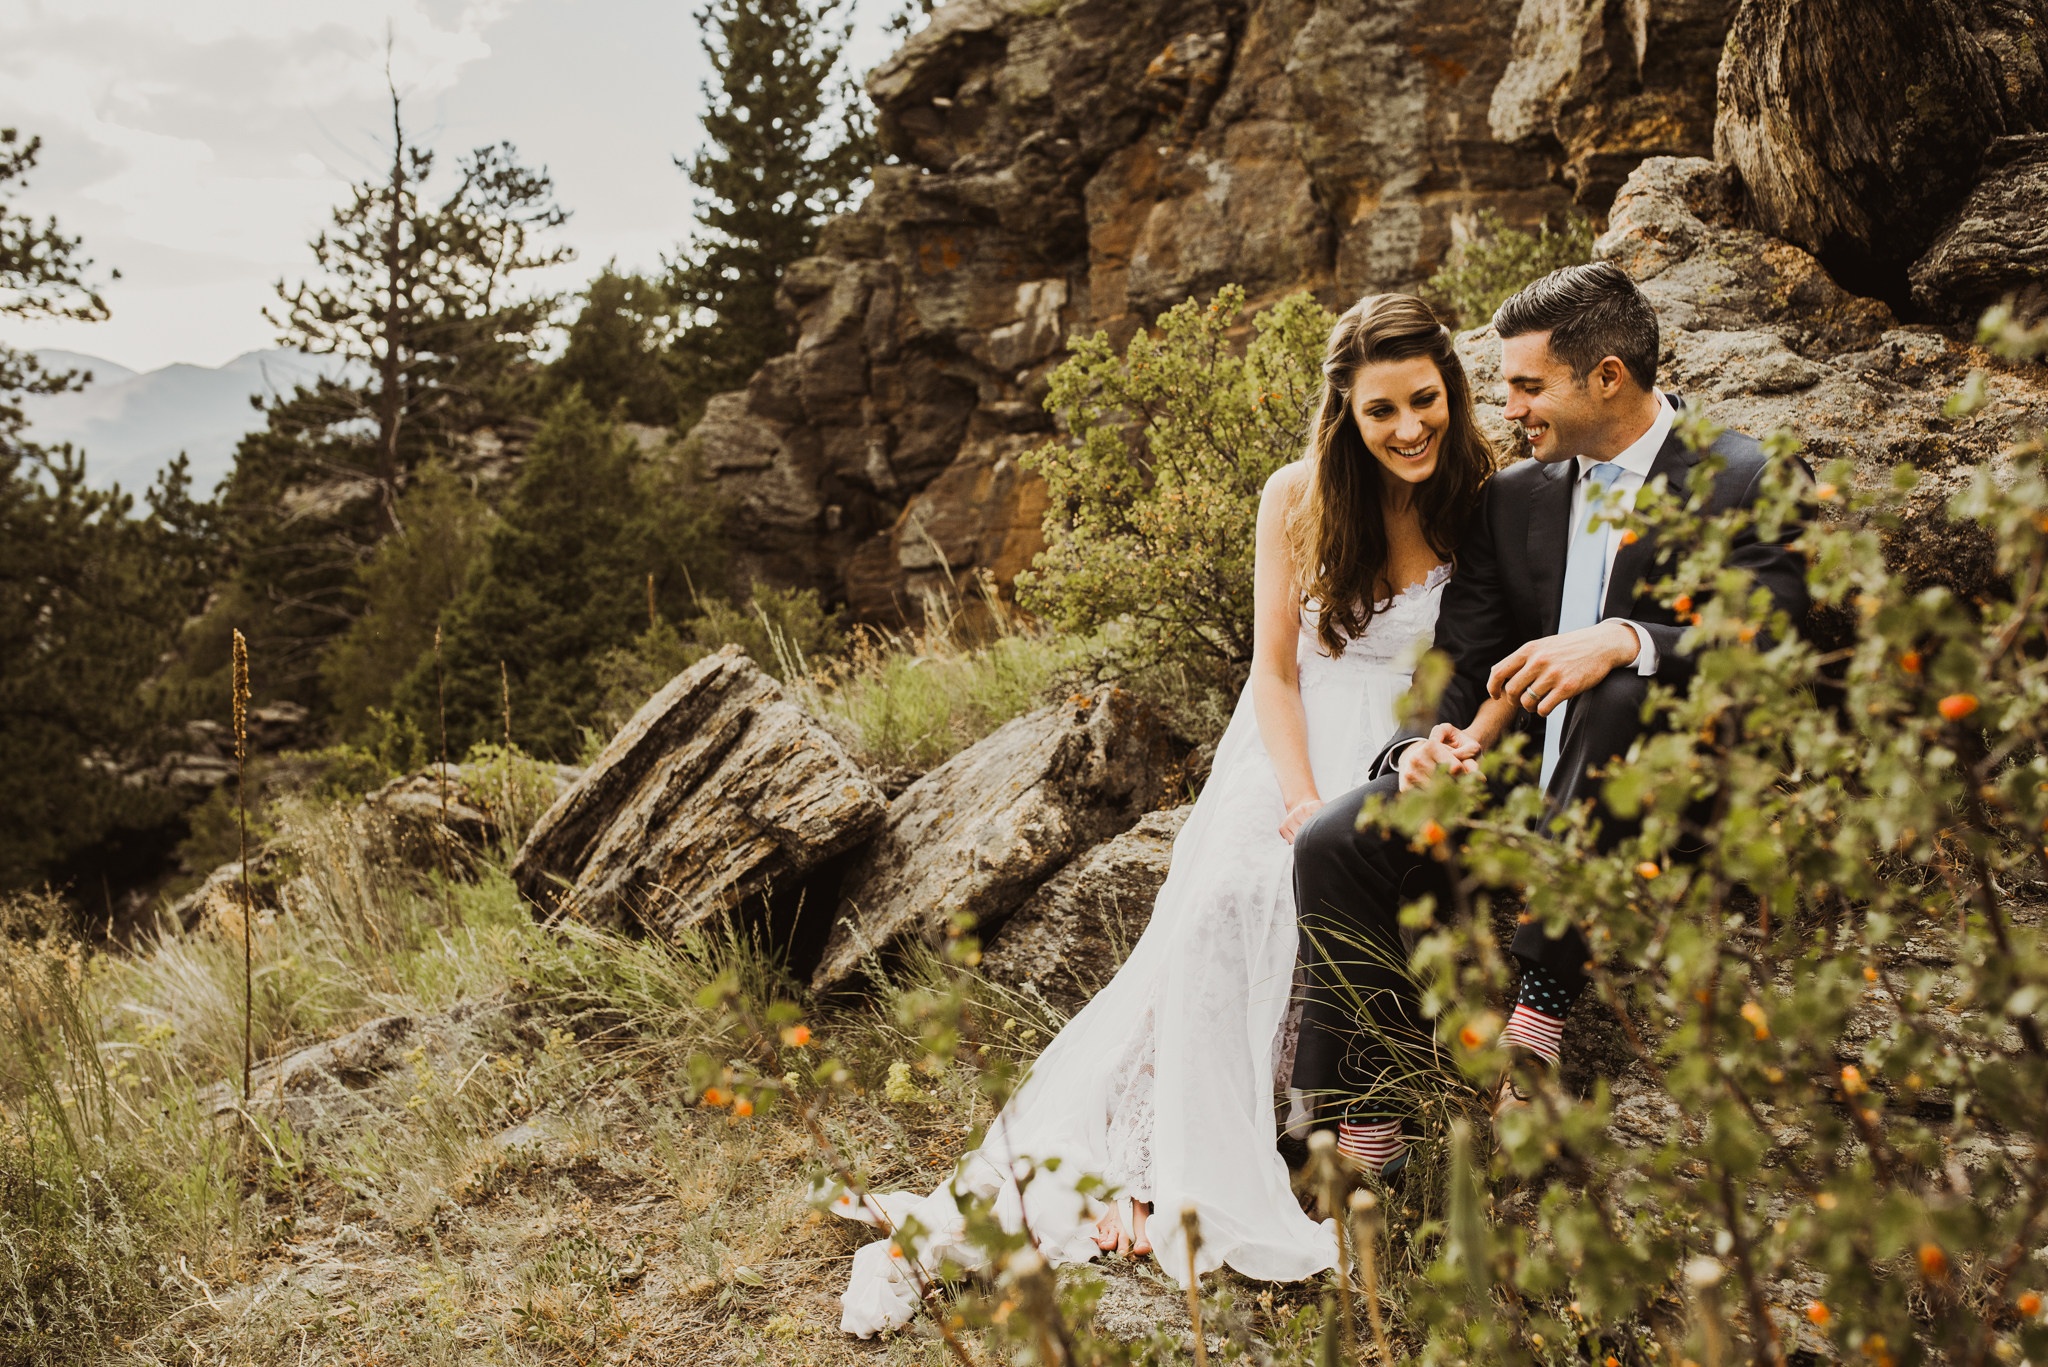 ©Isaiah + Taylor Photography - Estes National Park Adventure Elopement, Colorado Rockies-102.jpg